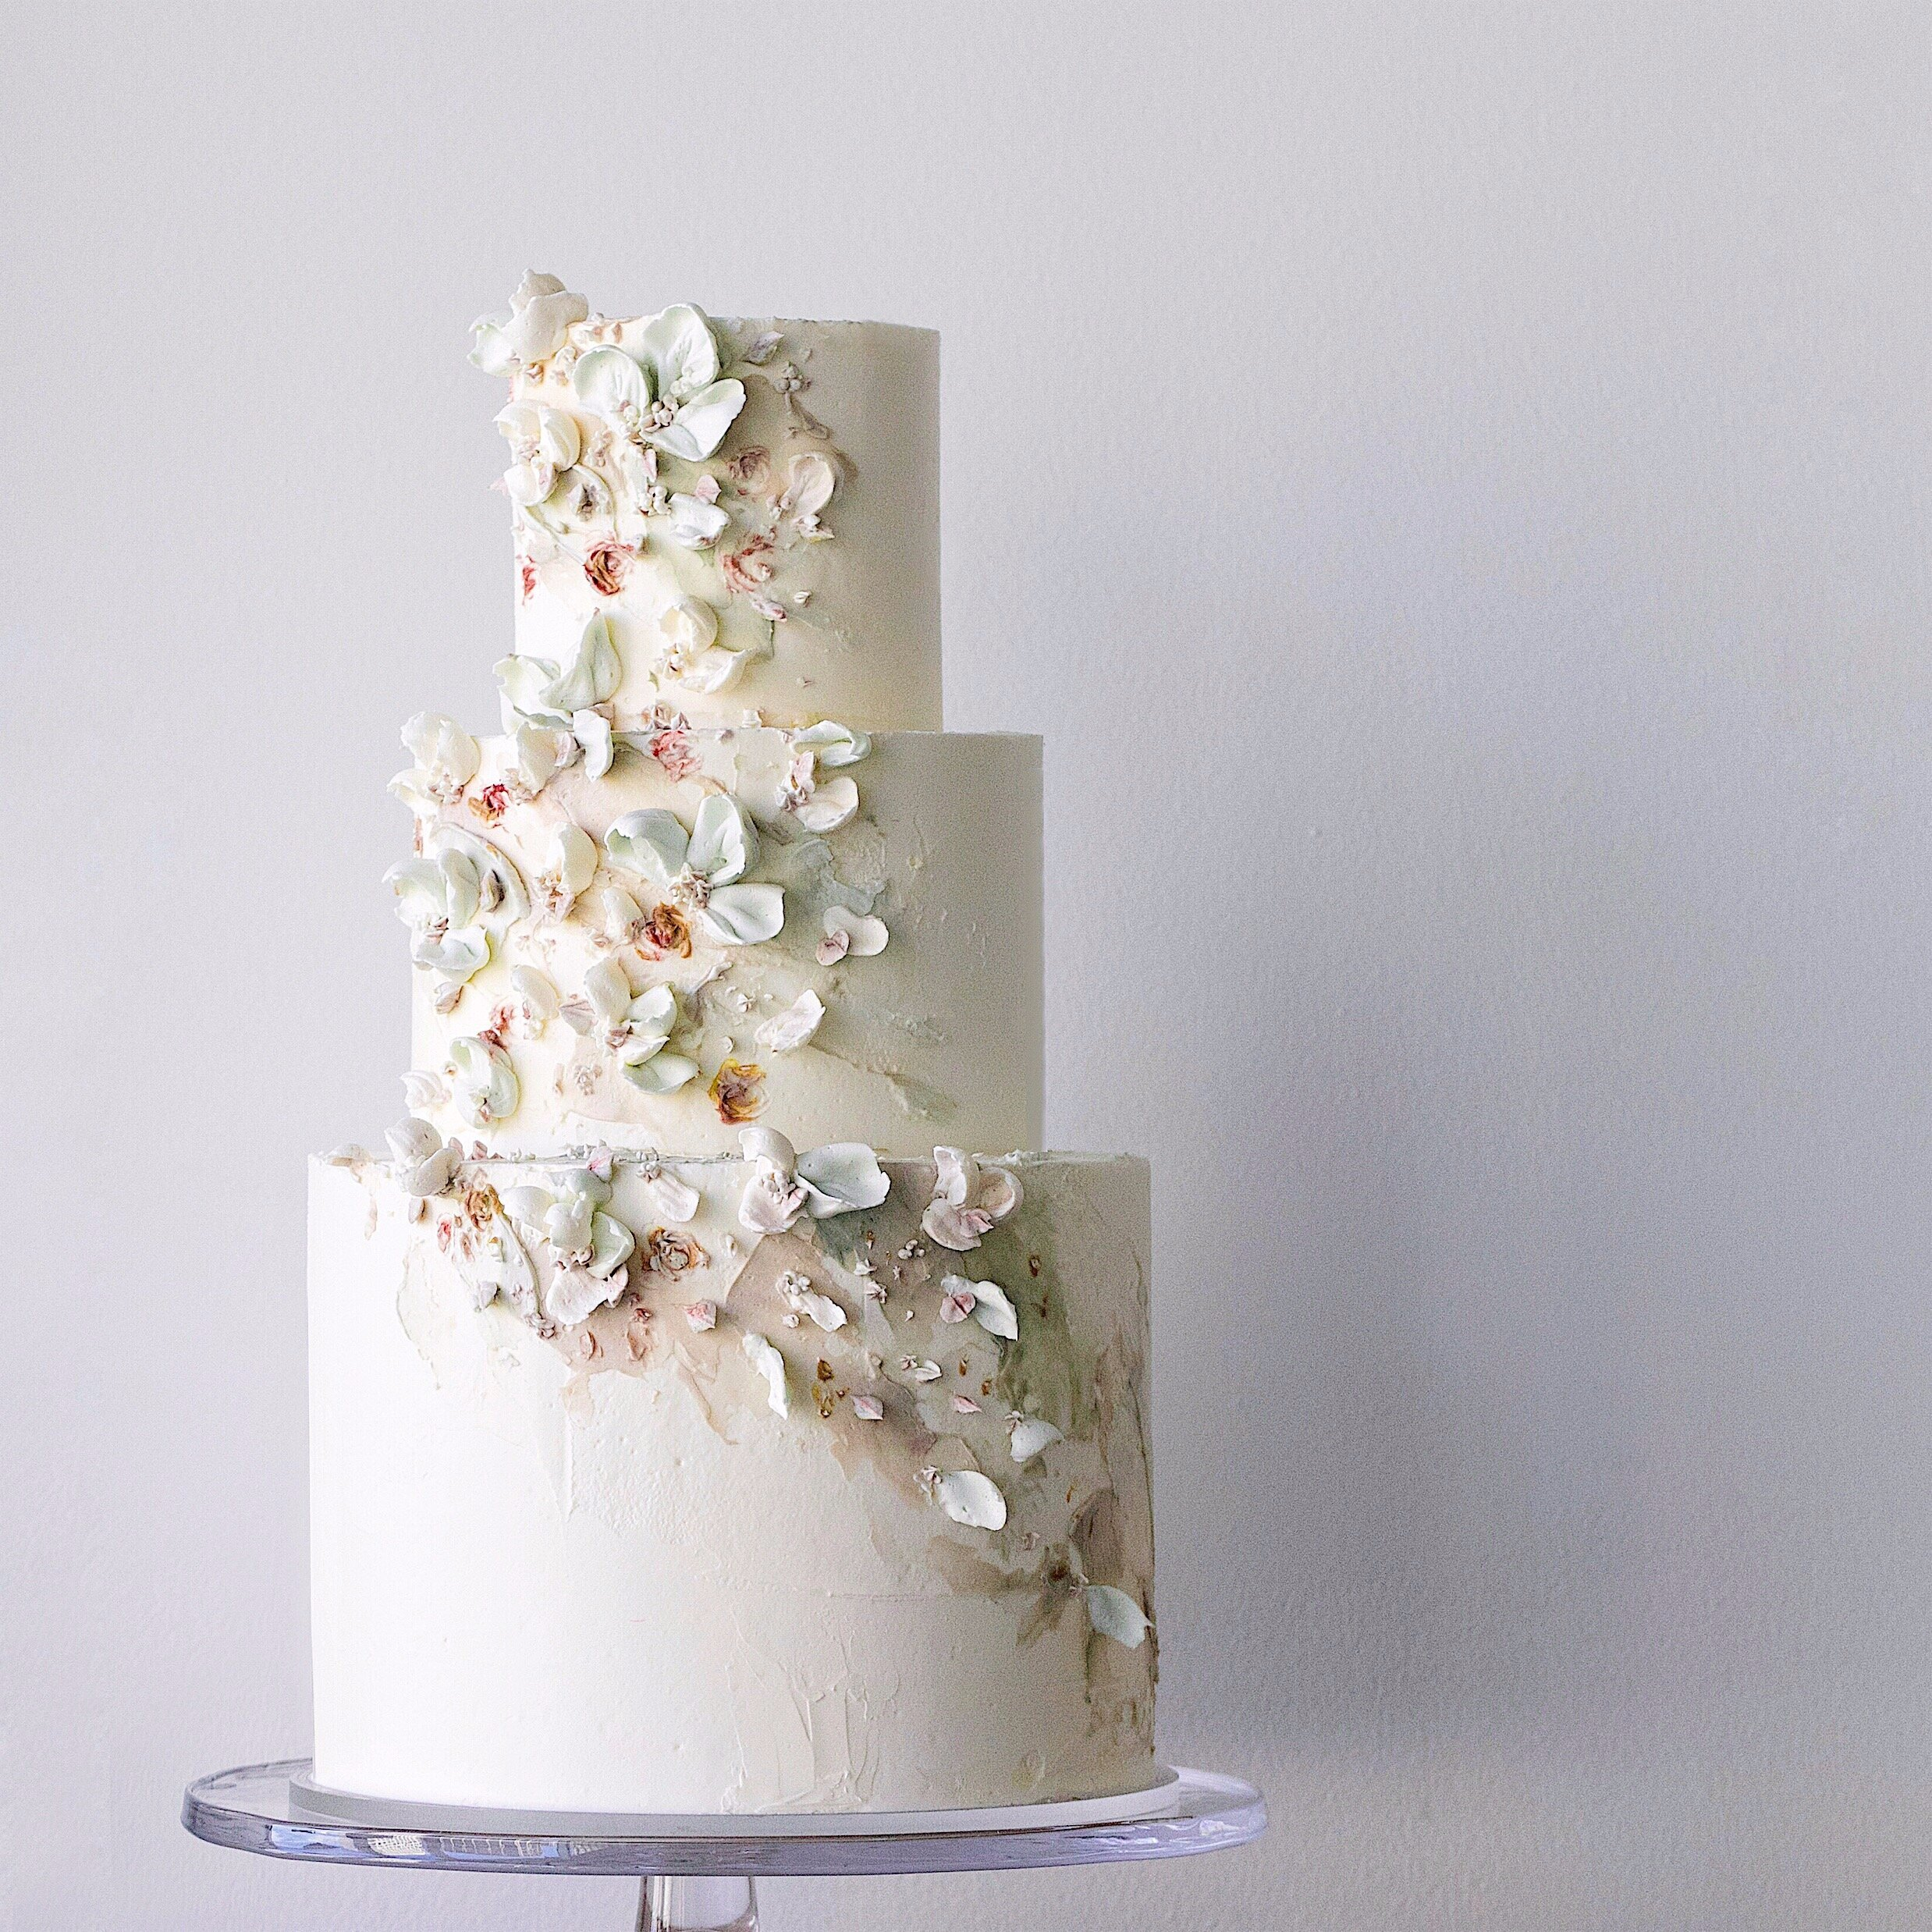 Signature Buttercream Wedding Design